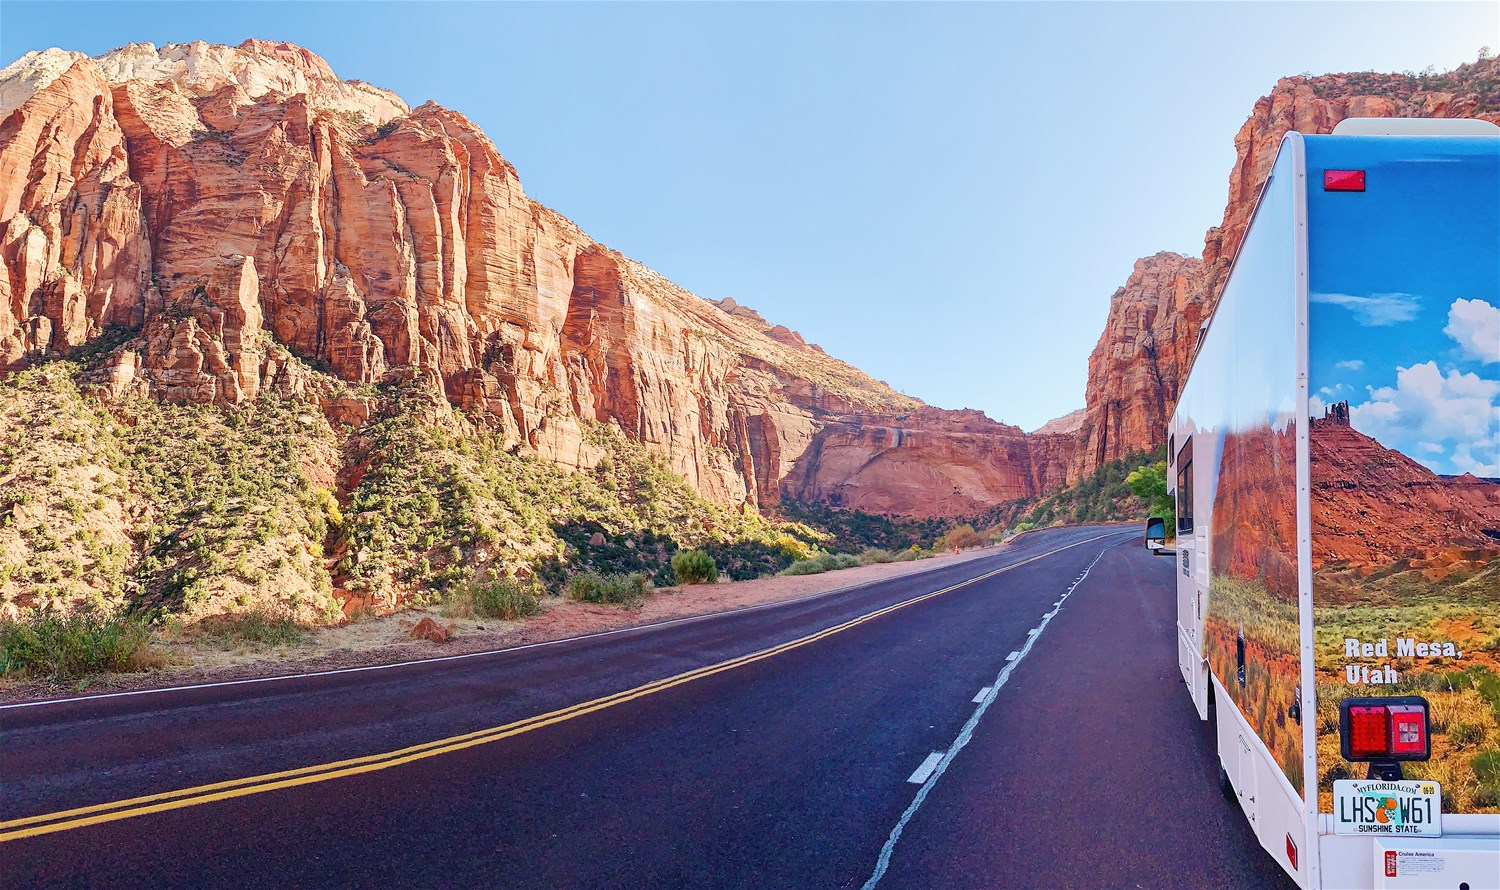 Exploring the USA's National Parks by Motorhome